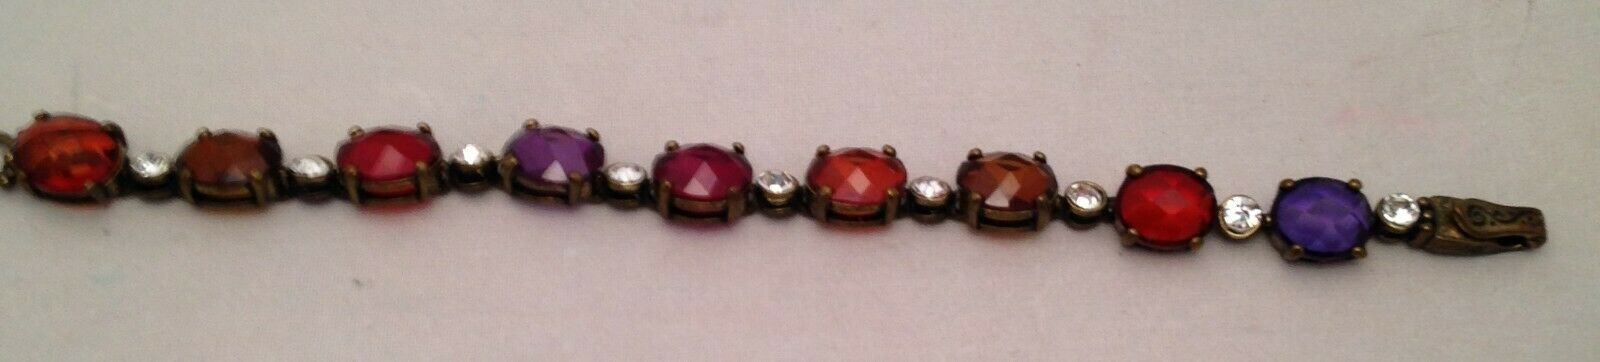 Vintage Bracelet of Multi colored Stones - No backing - Light Shines Thru